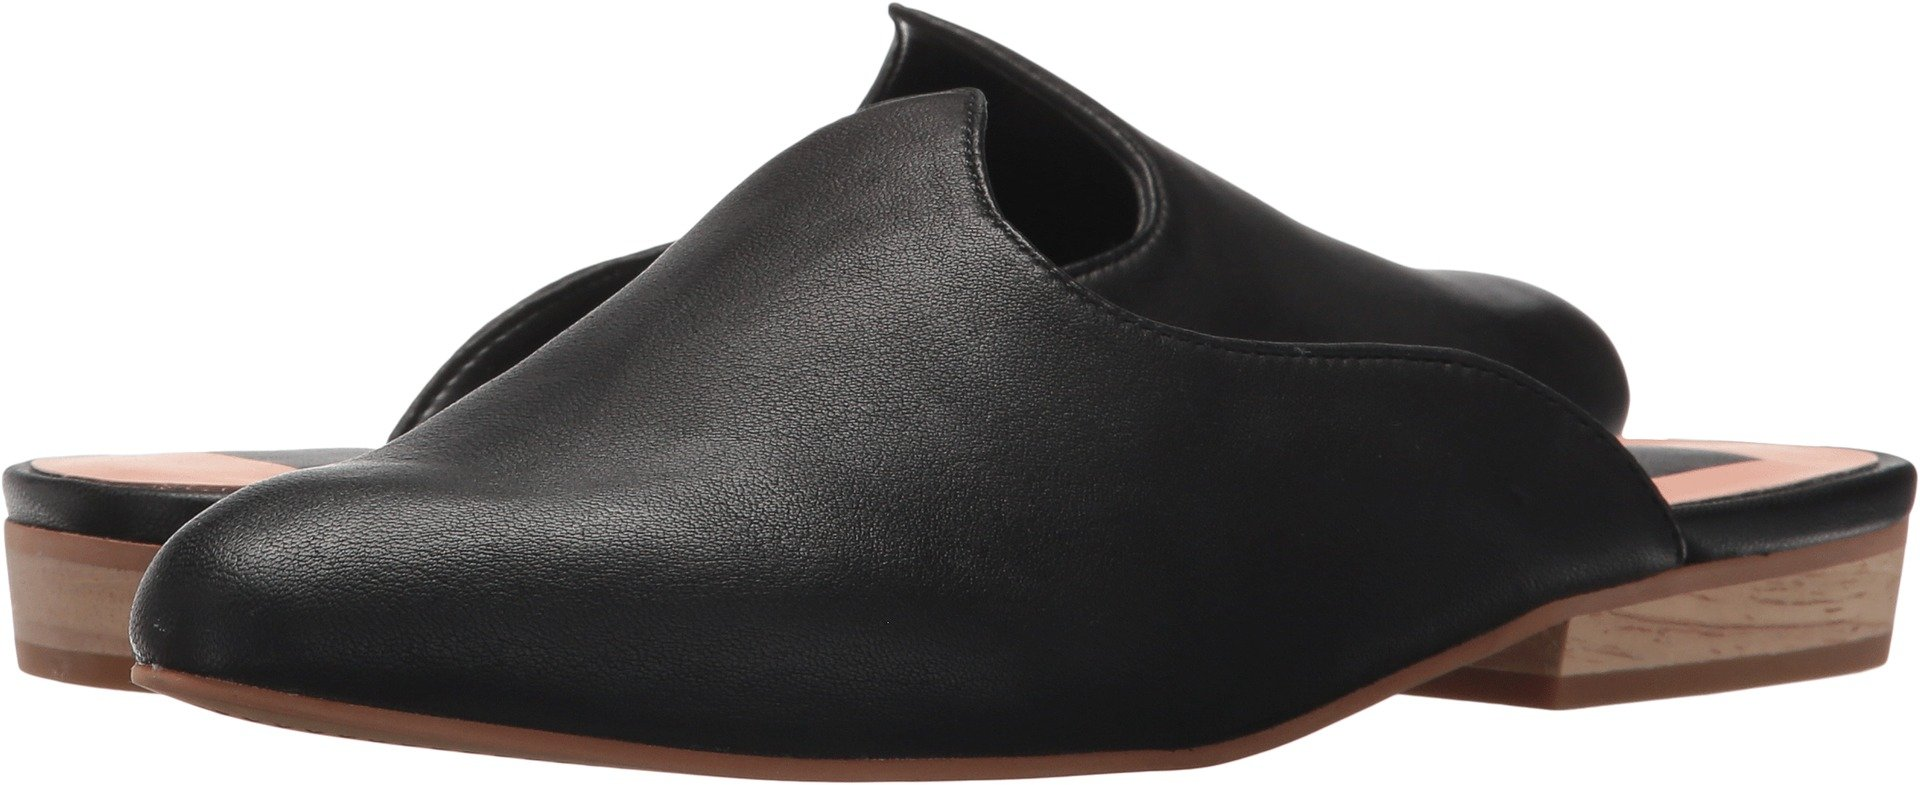 Dolce Vita Women's Marco Mule, Black Leather, 9 Medium US